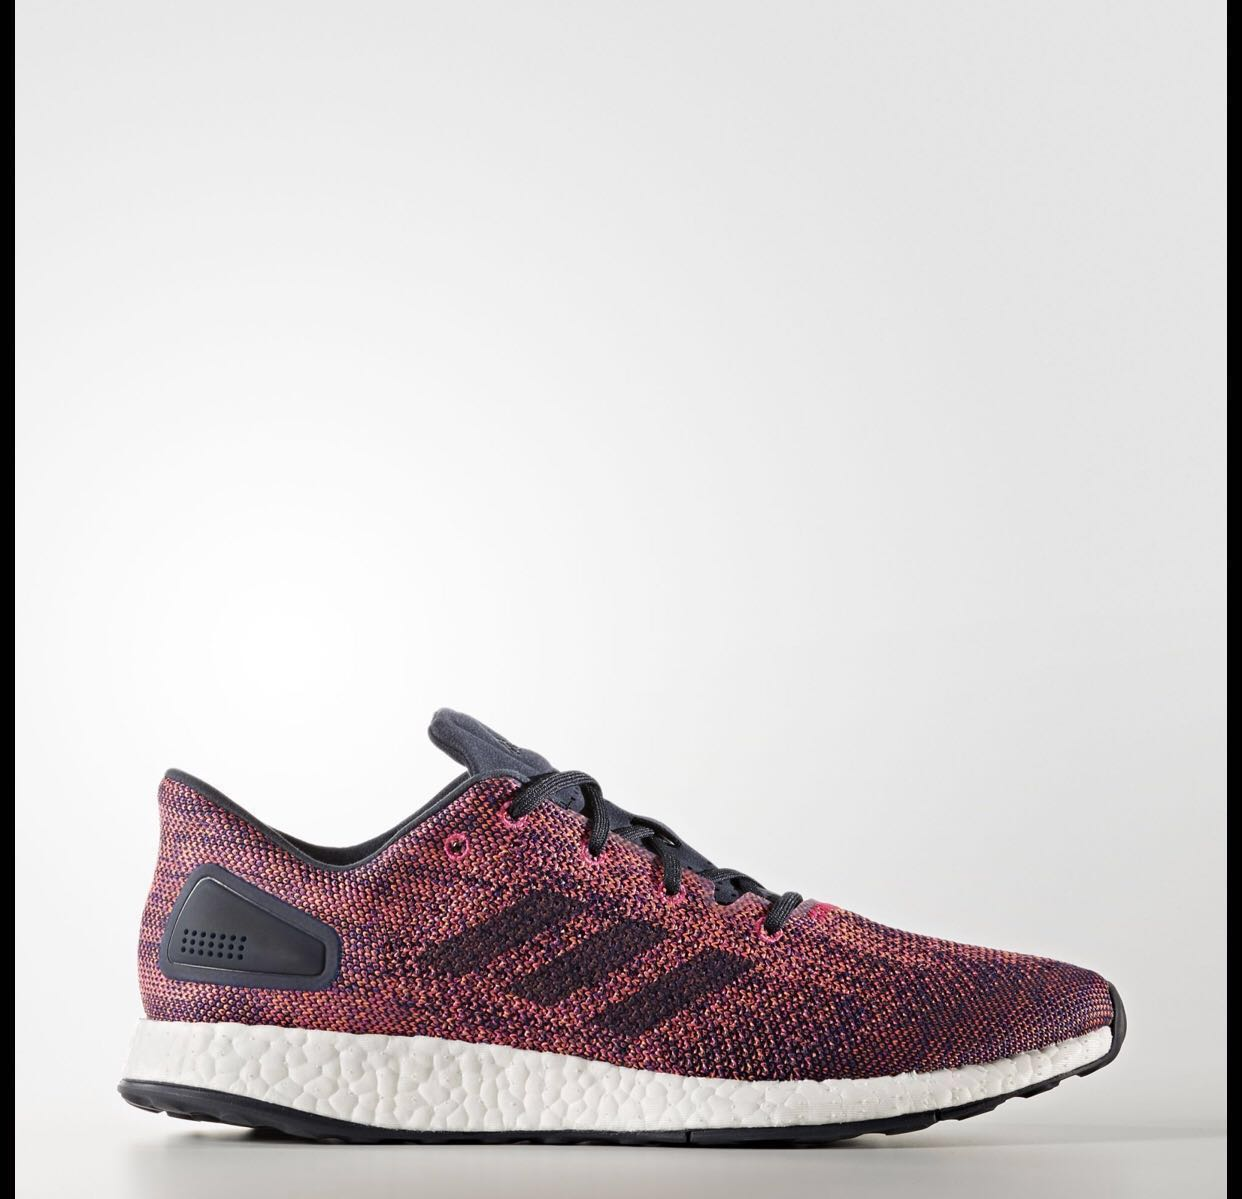 quality design 9b9df e2674 NEW Adidas PureBOOST DPR LTD Shoes UK size 8, US Size 8.5, Mens Fashion,  Footwear, Sneakers on Carousell